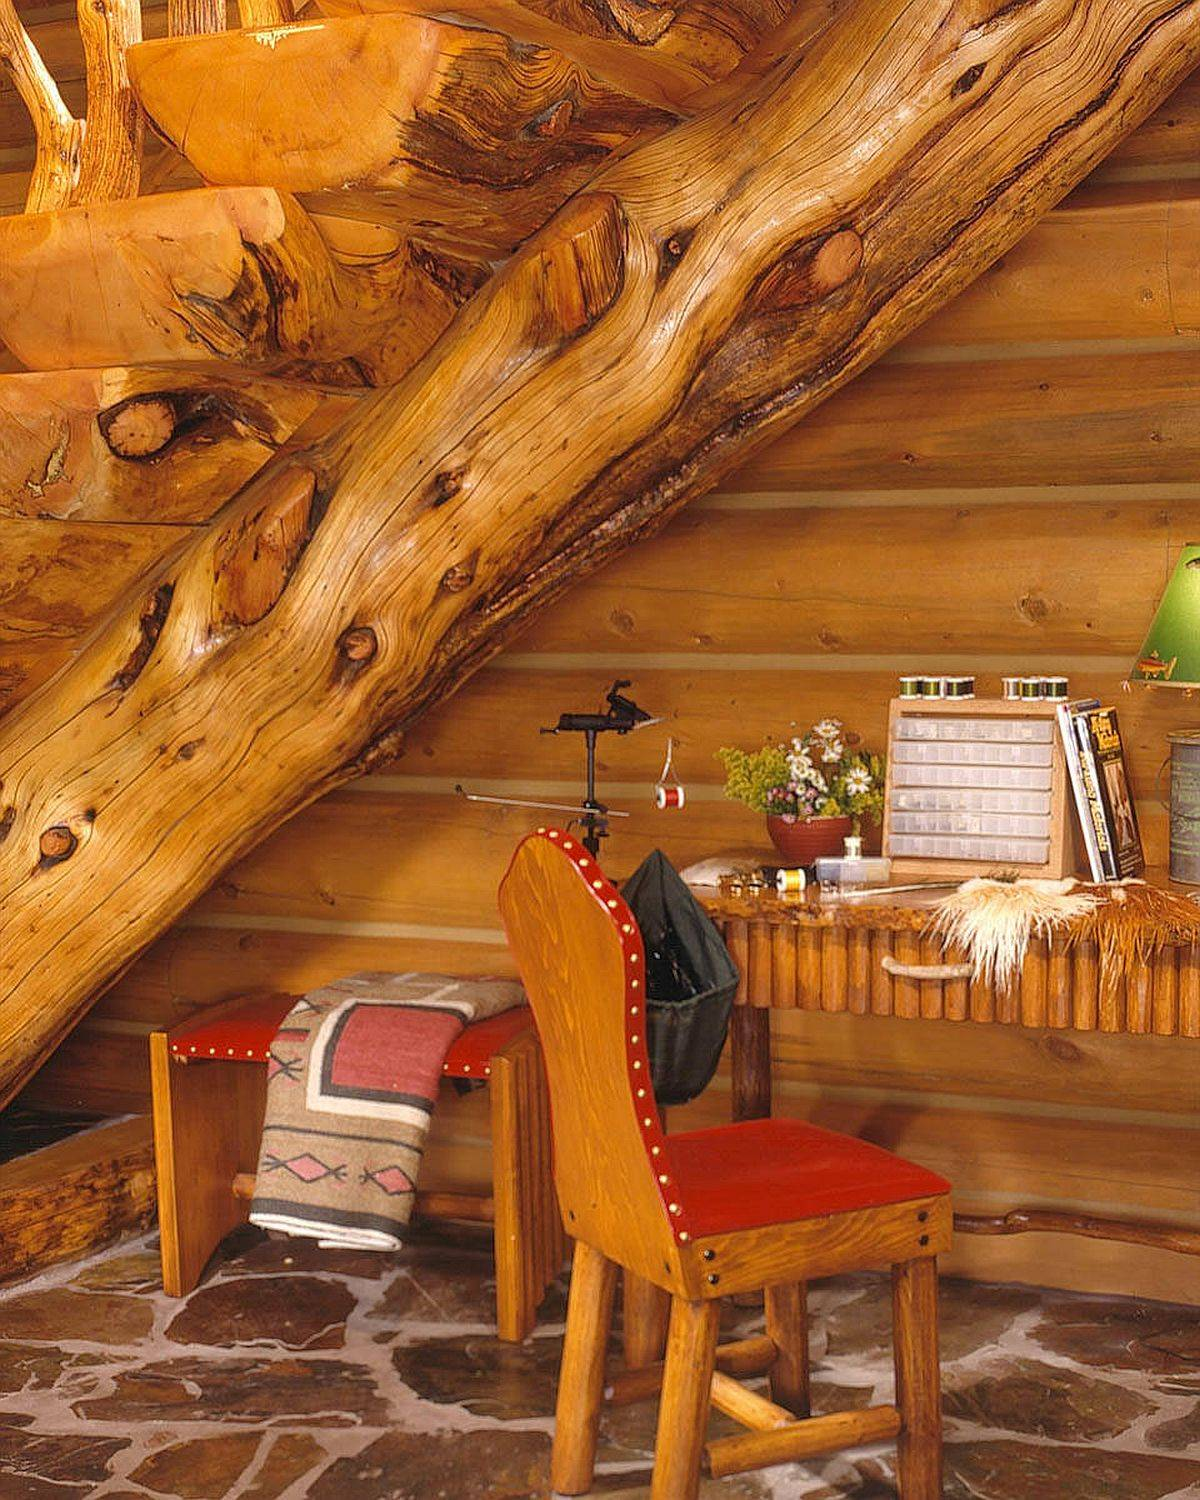 It-is-difficult-to-find-a-more-rustic-backdrop-than-this-for-the-small-rustic-home-office-54023